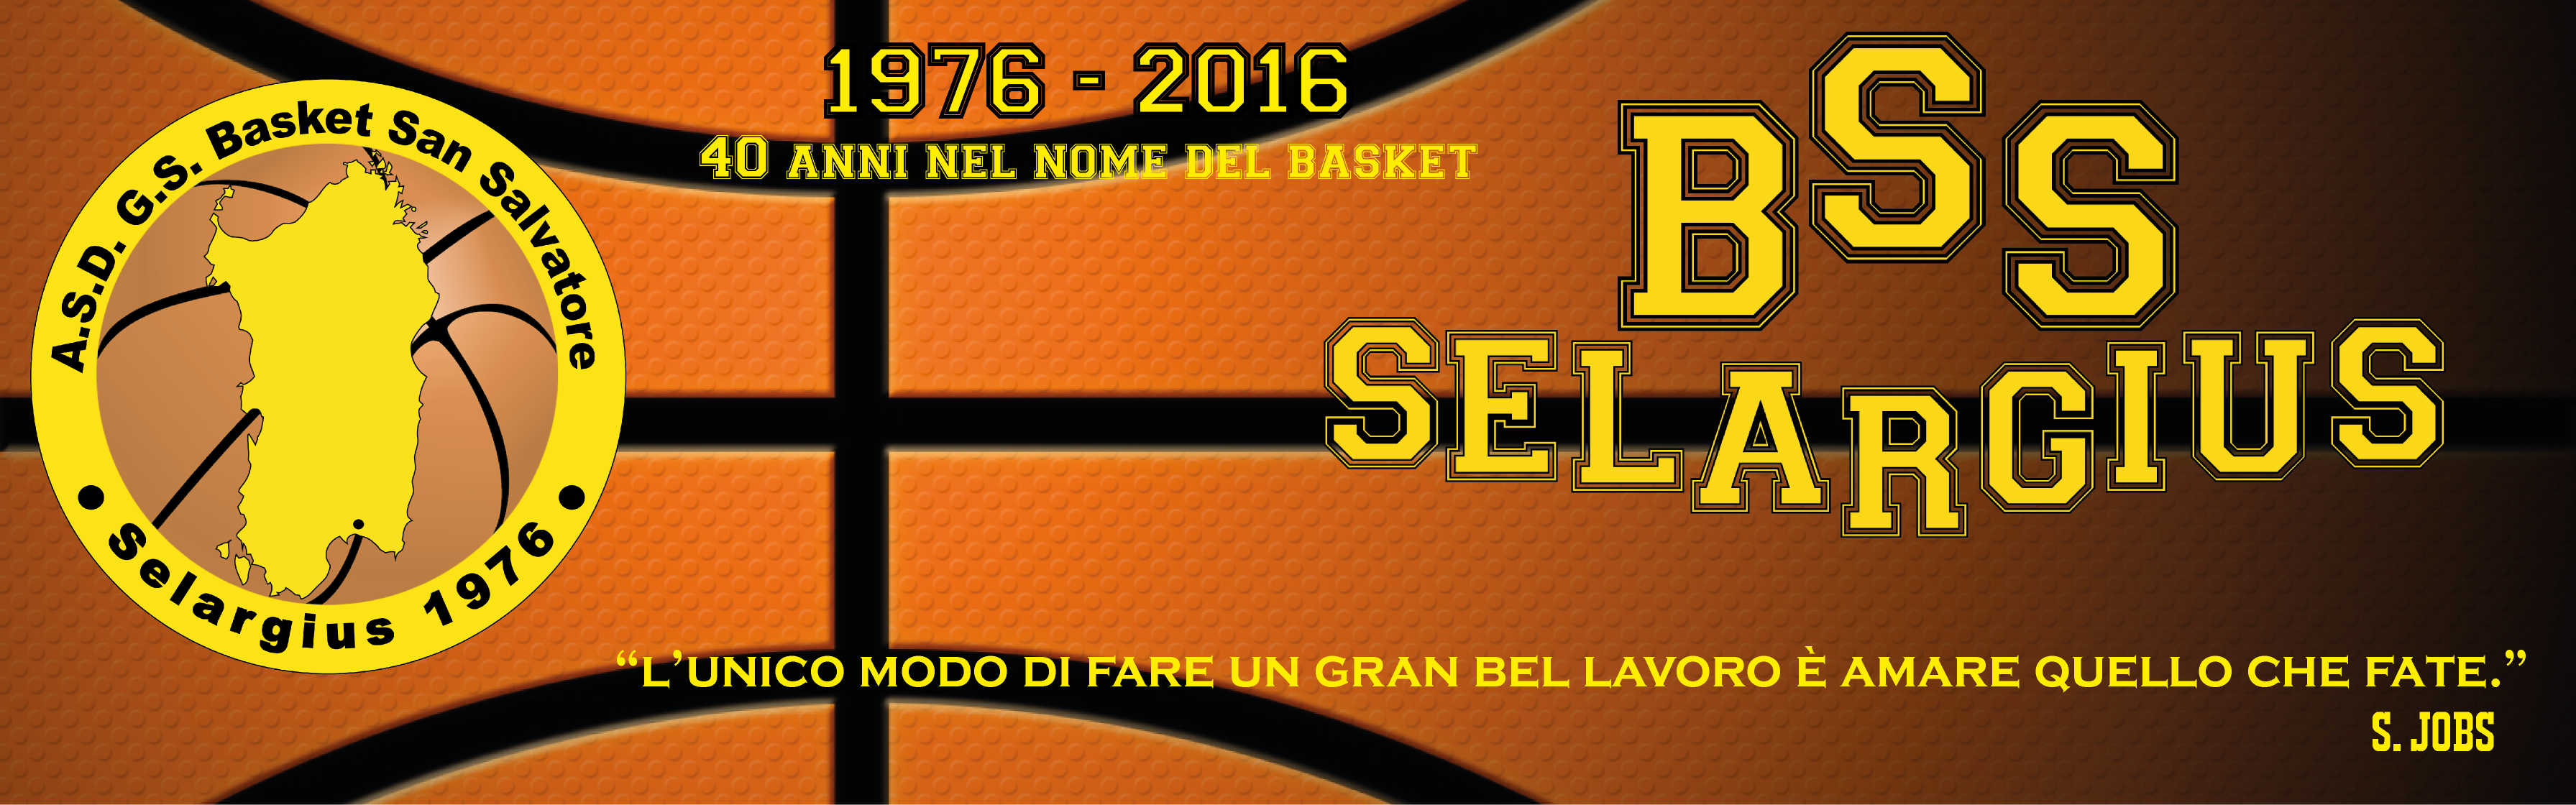 http://www.basketsansalvatore.it/wp/wp-content/uploads/2016/09/Test-sfondo-sito-e-fb-rev.-1.png